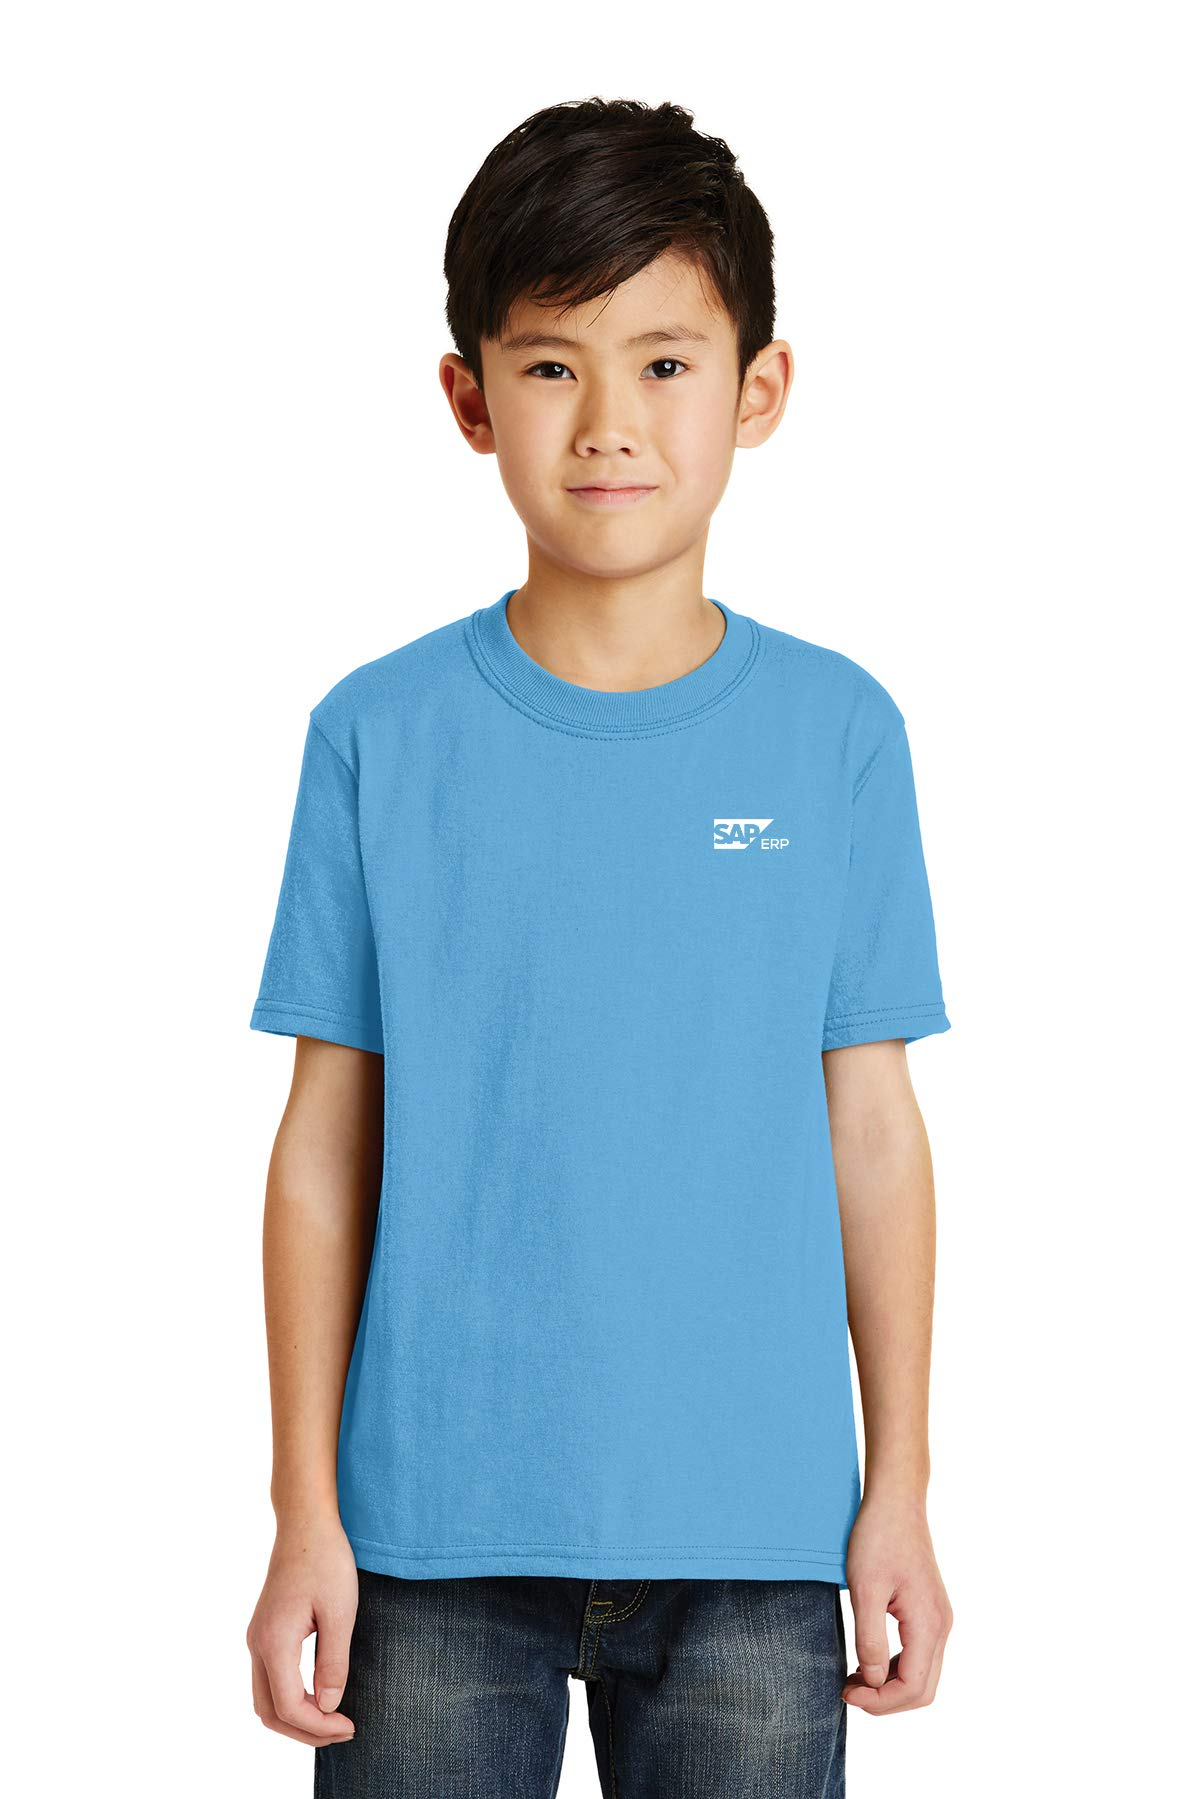 Youth Core Blend Tee - 24 Qty - 7.84 Each - Promotional Tee Your Logo Aquatic Blue